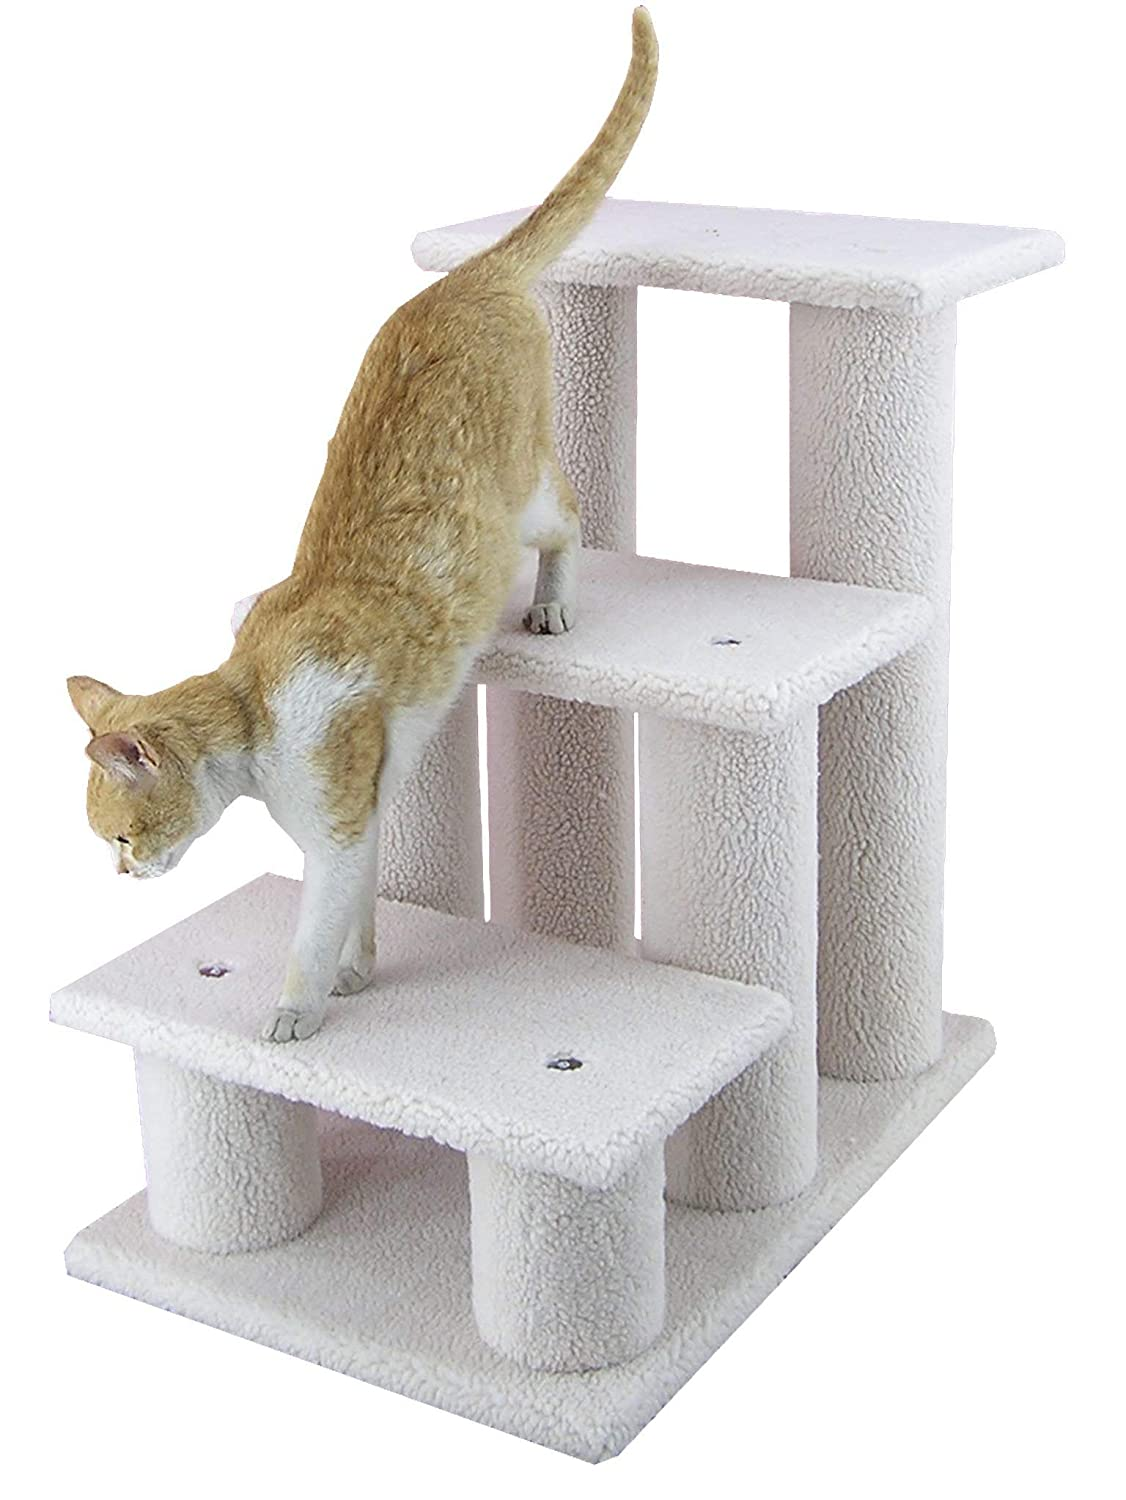 Aeromark International Armarkat Pet Steps Stairs Ramp for Cats and Dogs